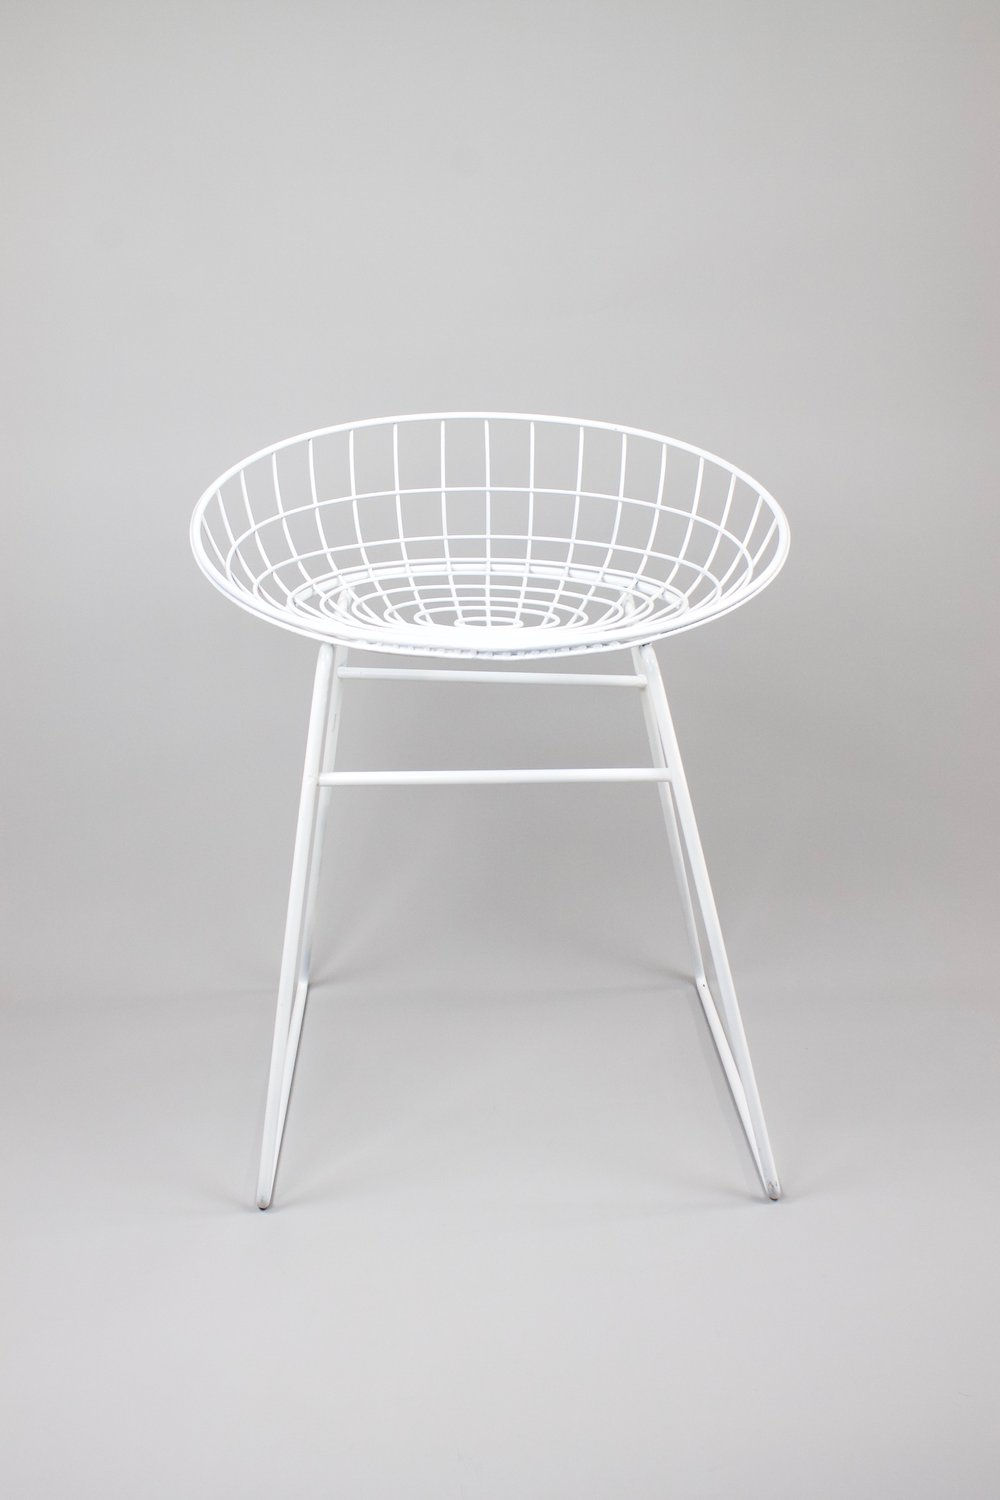 White wire chair    Steel wire chair from the fifties. Functional and transparent design by Cees Braakman and Adriaan Dekker for Pastoe. This piece was inherited.